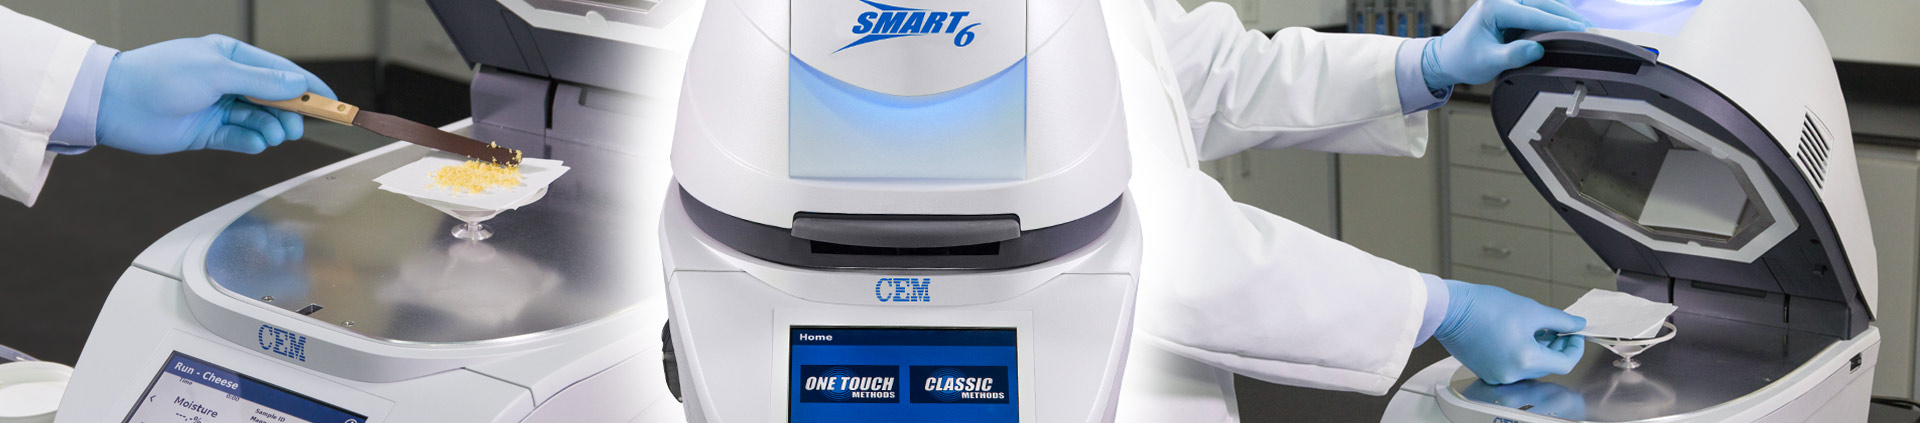 SMART 6 Moisture Solids Analyzer - One System, Limitless Testing